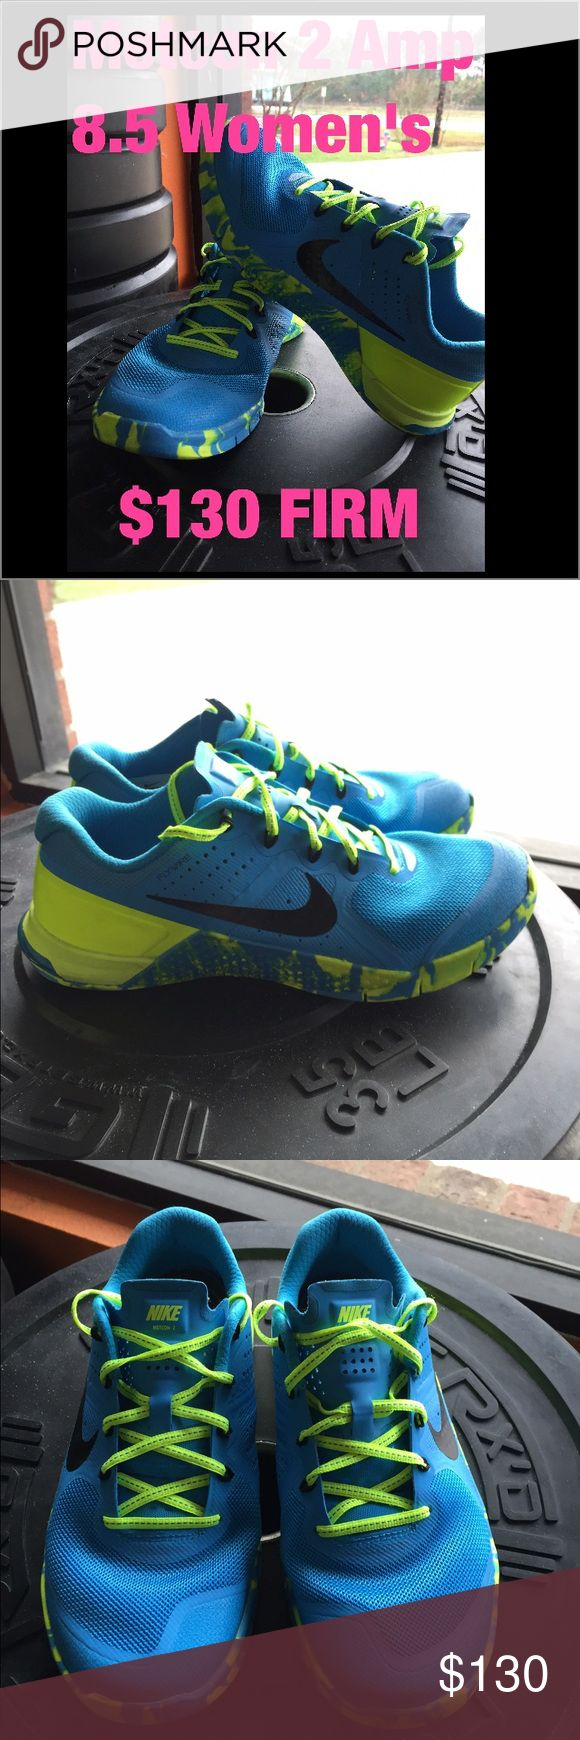 Nike Metcon 2 Crossfit shoes Nike Metcon 2 Amp. Women's size 8.5. Purchased brand new, wore them 2-3 times indoor gym only! No flaws! 1/2 size too big for me. Perfect for Crossfit training! Nike Shoes Athletic Shoes